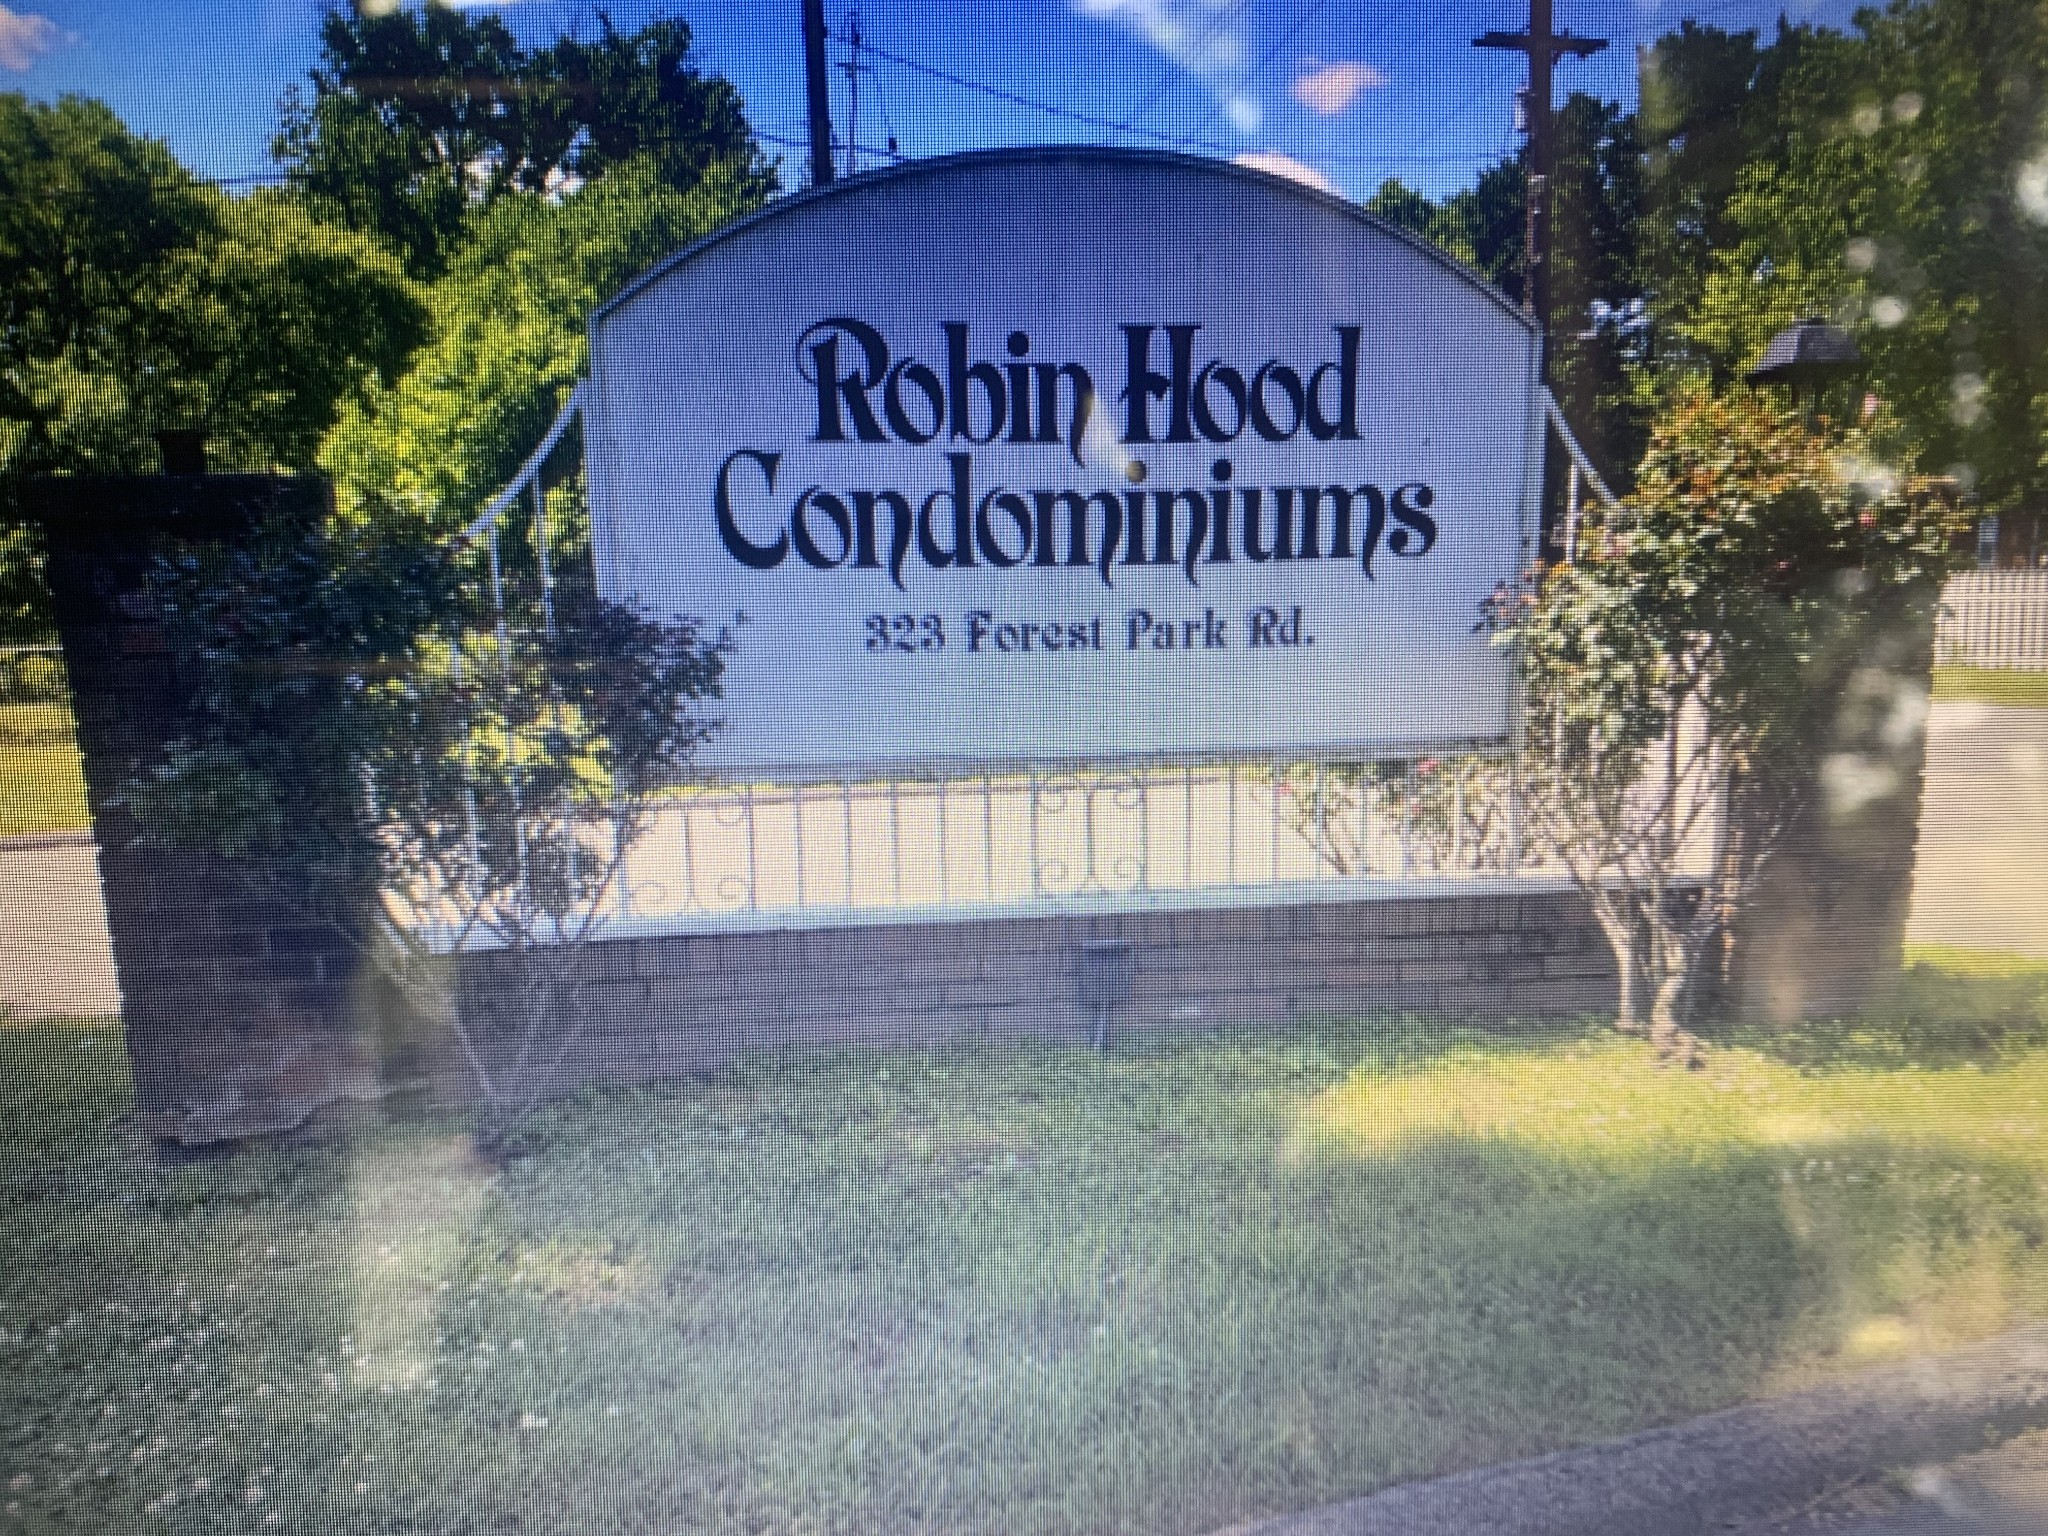 Pardon the mess! The owner is cleaning. CASH BUYER & INVESTORS . Last rent was 1100$. Renovated Town home! Priced to sell quickly. Bring all cash offer for seller to review today! Must close 9/21!! Call agent for showing info.